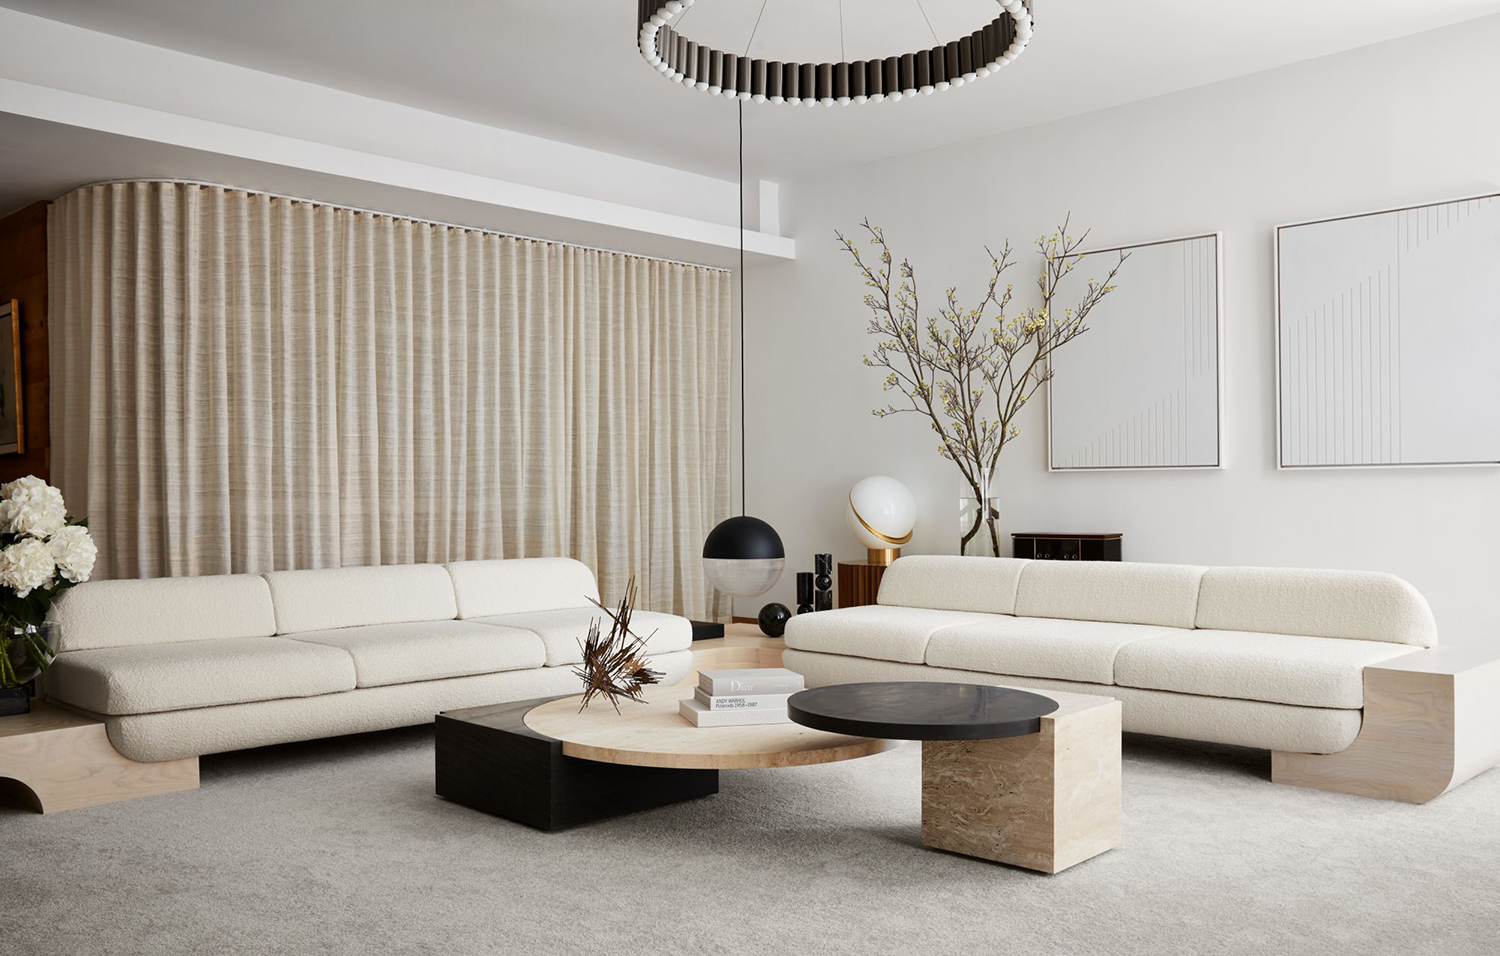 lee-brooms-second-home-a-tribeca-penthouse-new-york-usa